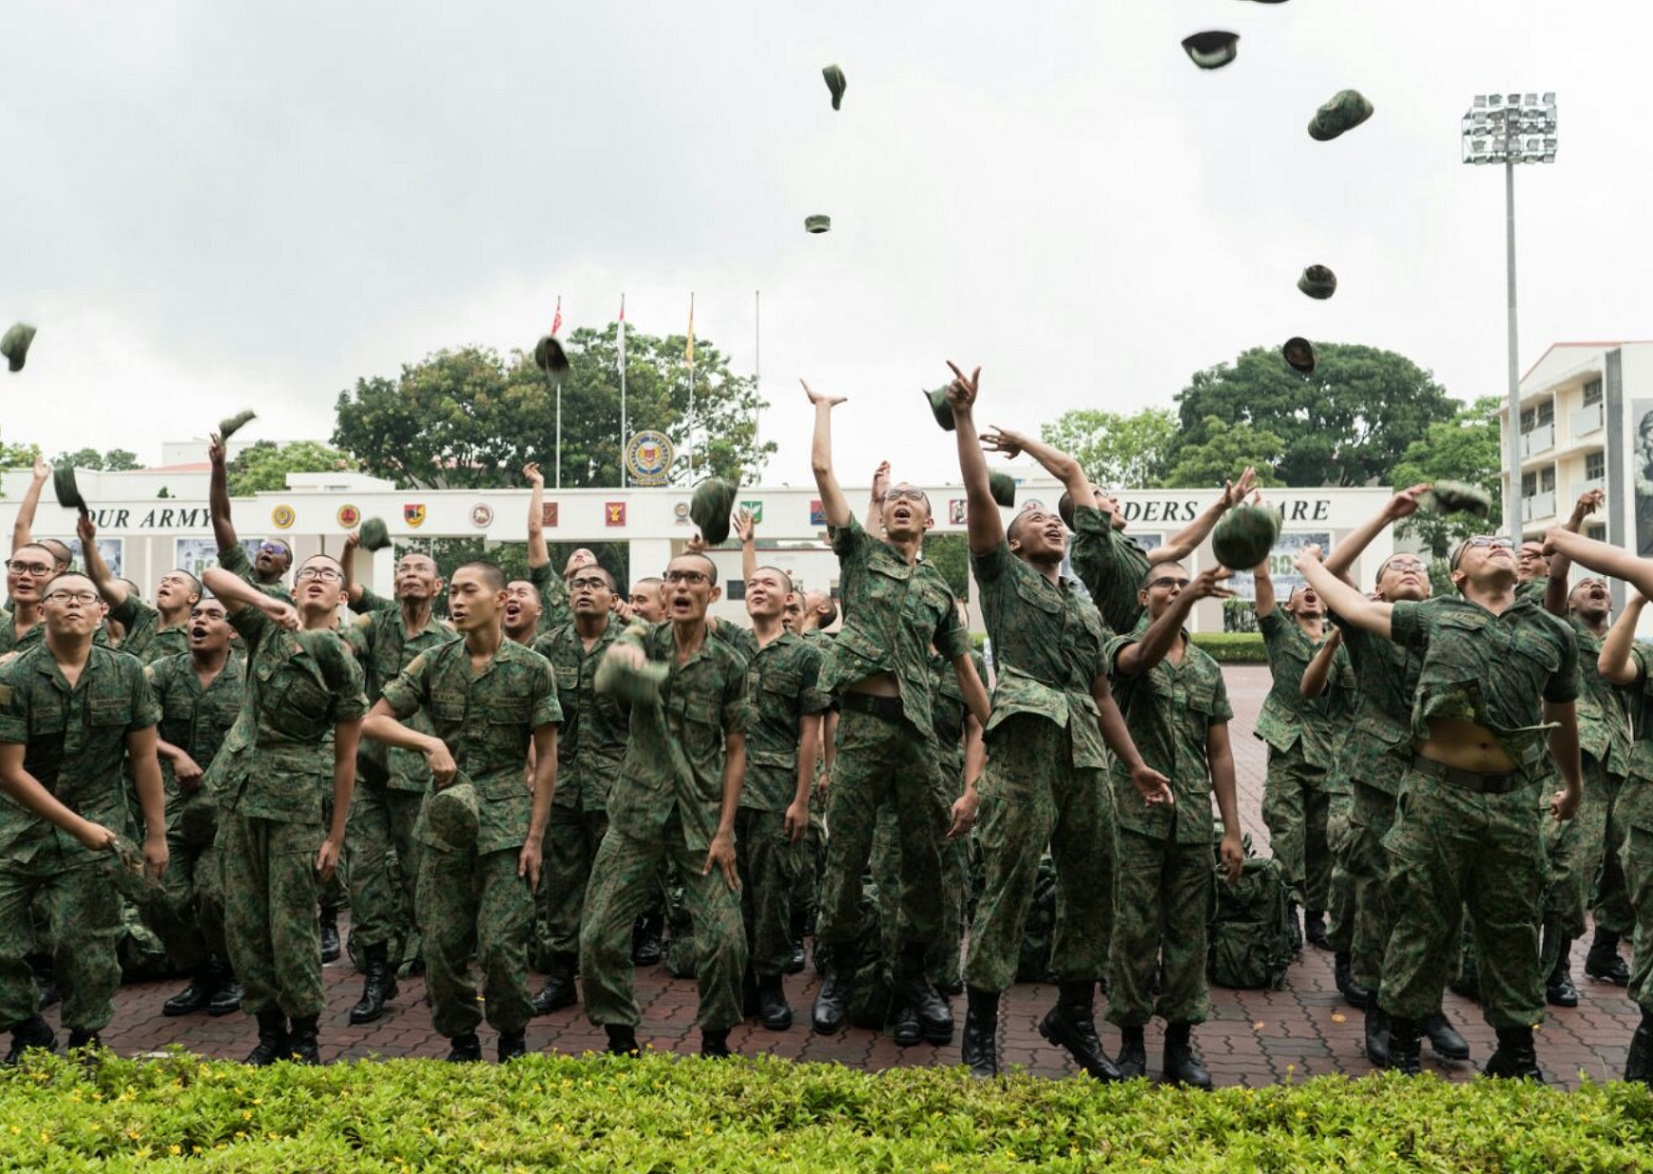 Singapore, soldier, army, military, capability, academic performance, leader